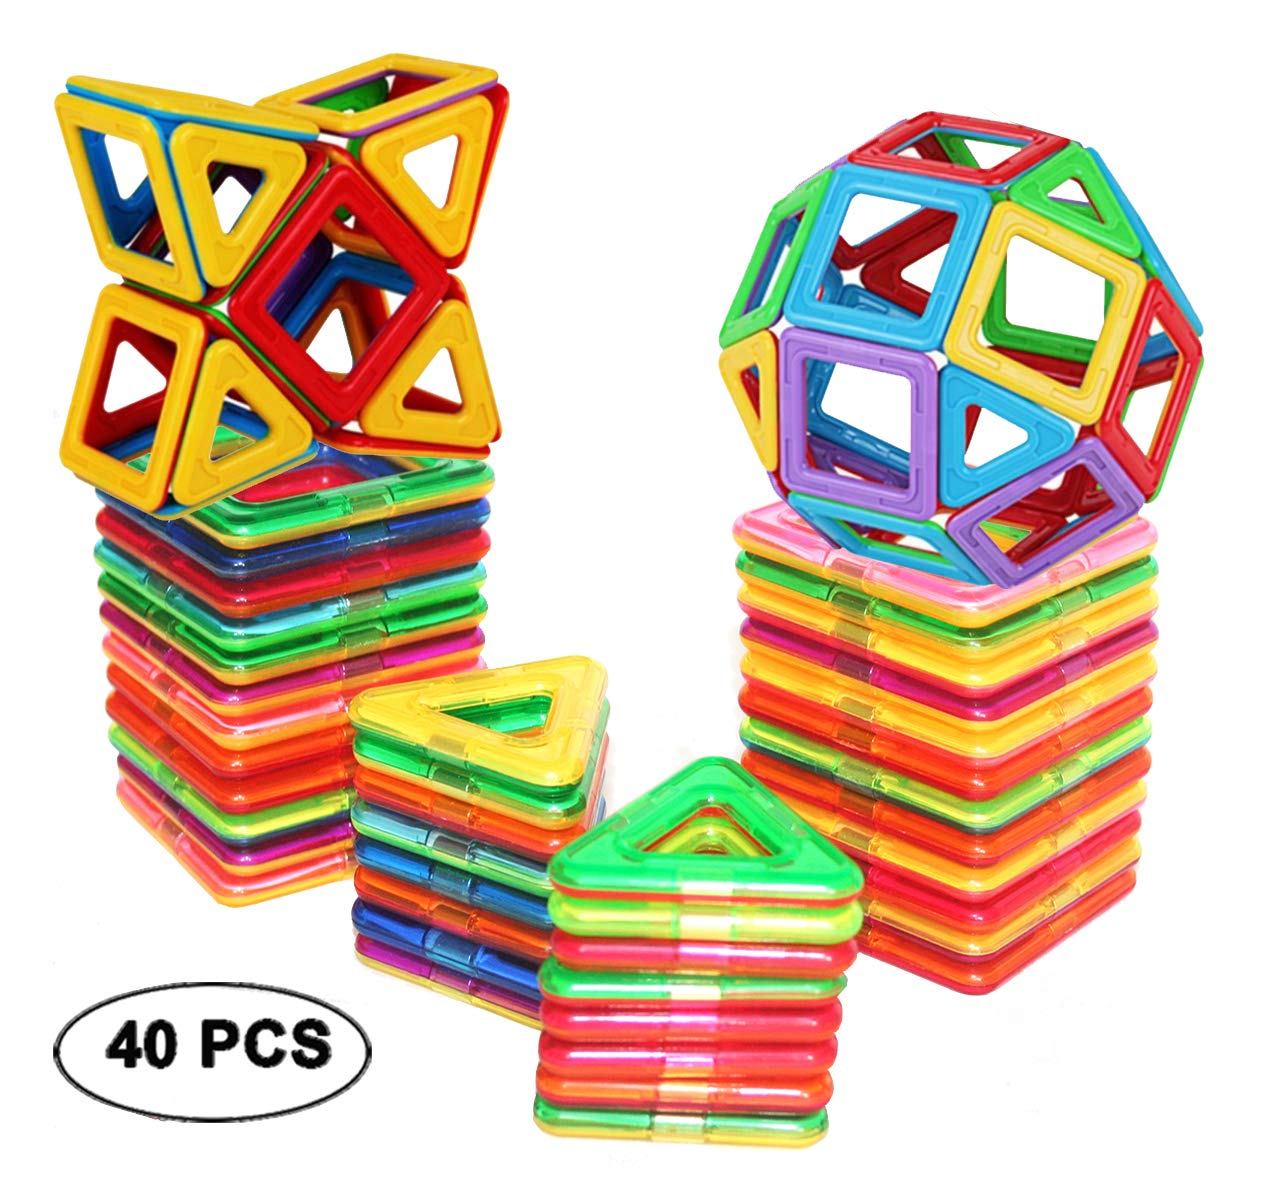 DreambuilderToy Magnetic Tiles Building Blocks